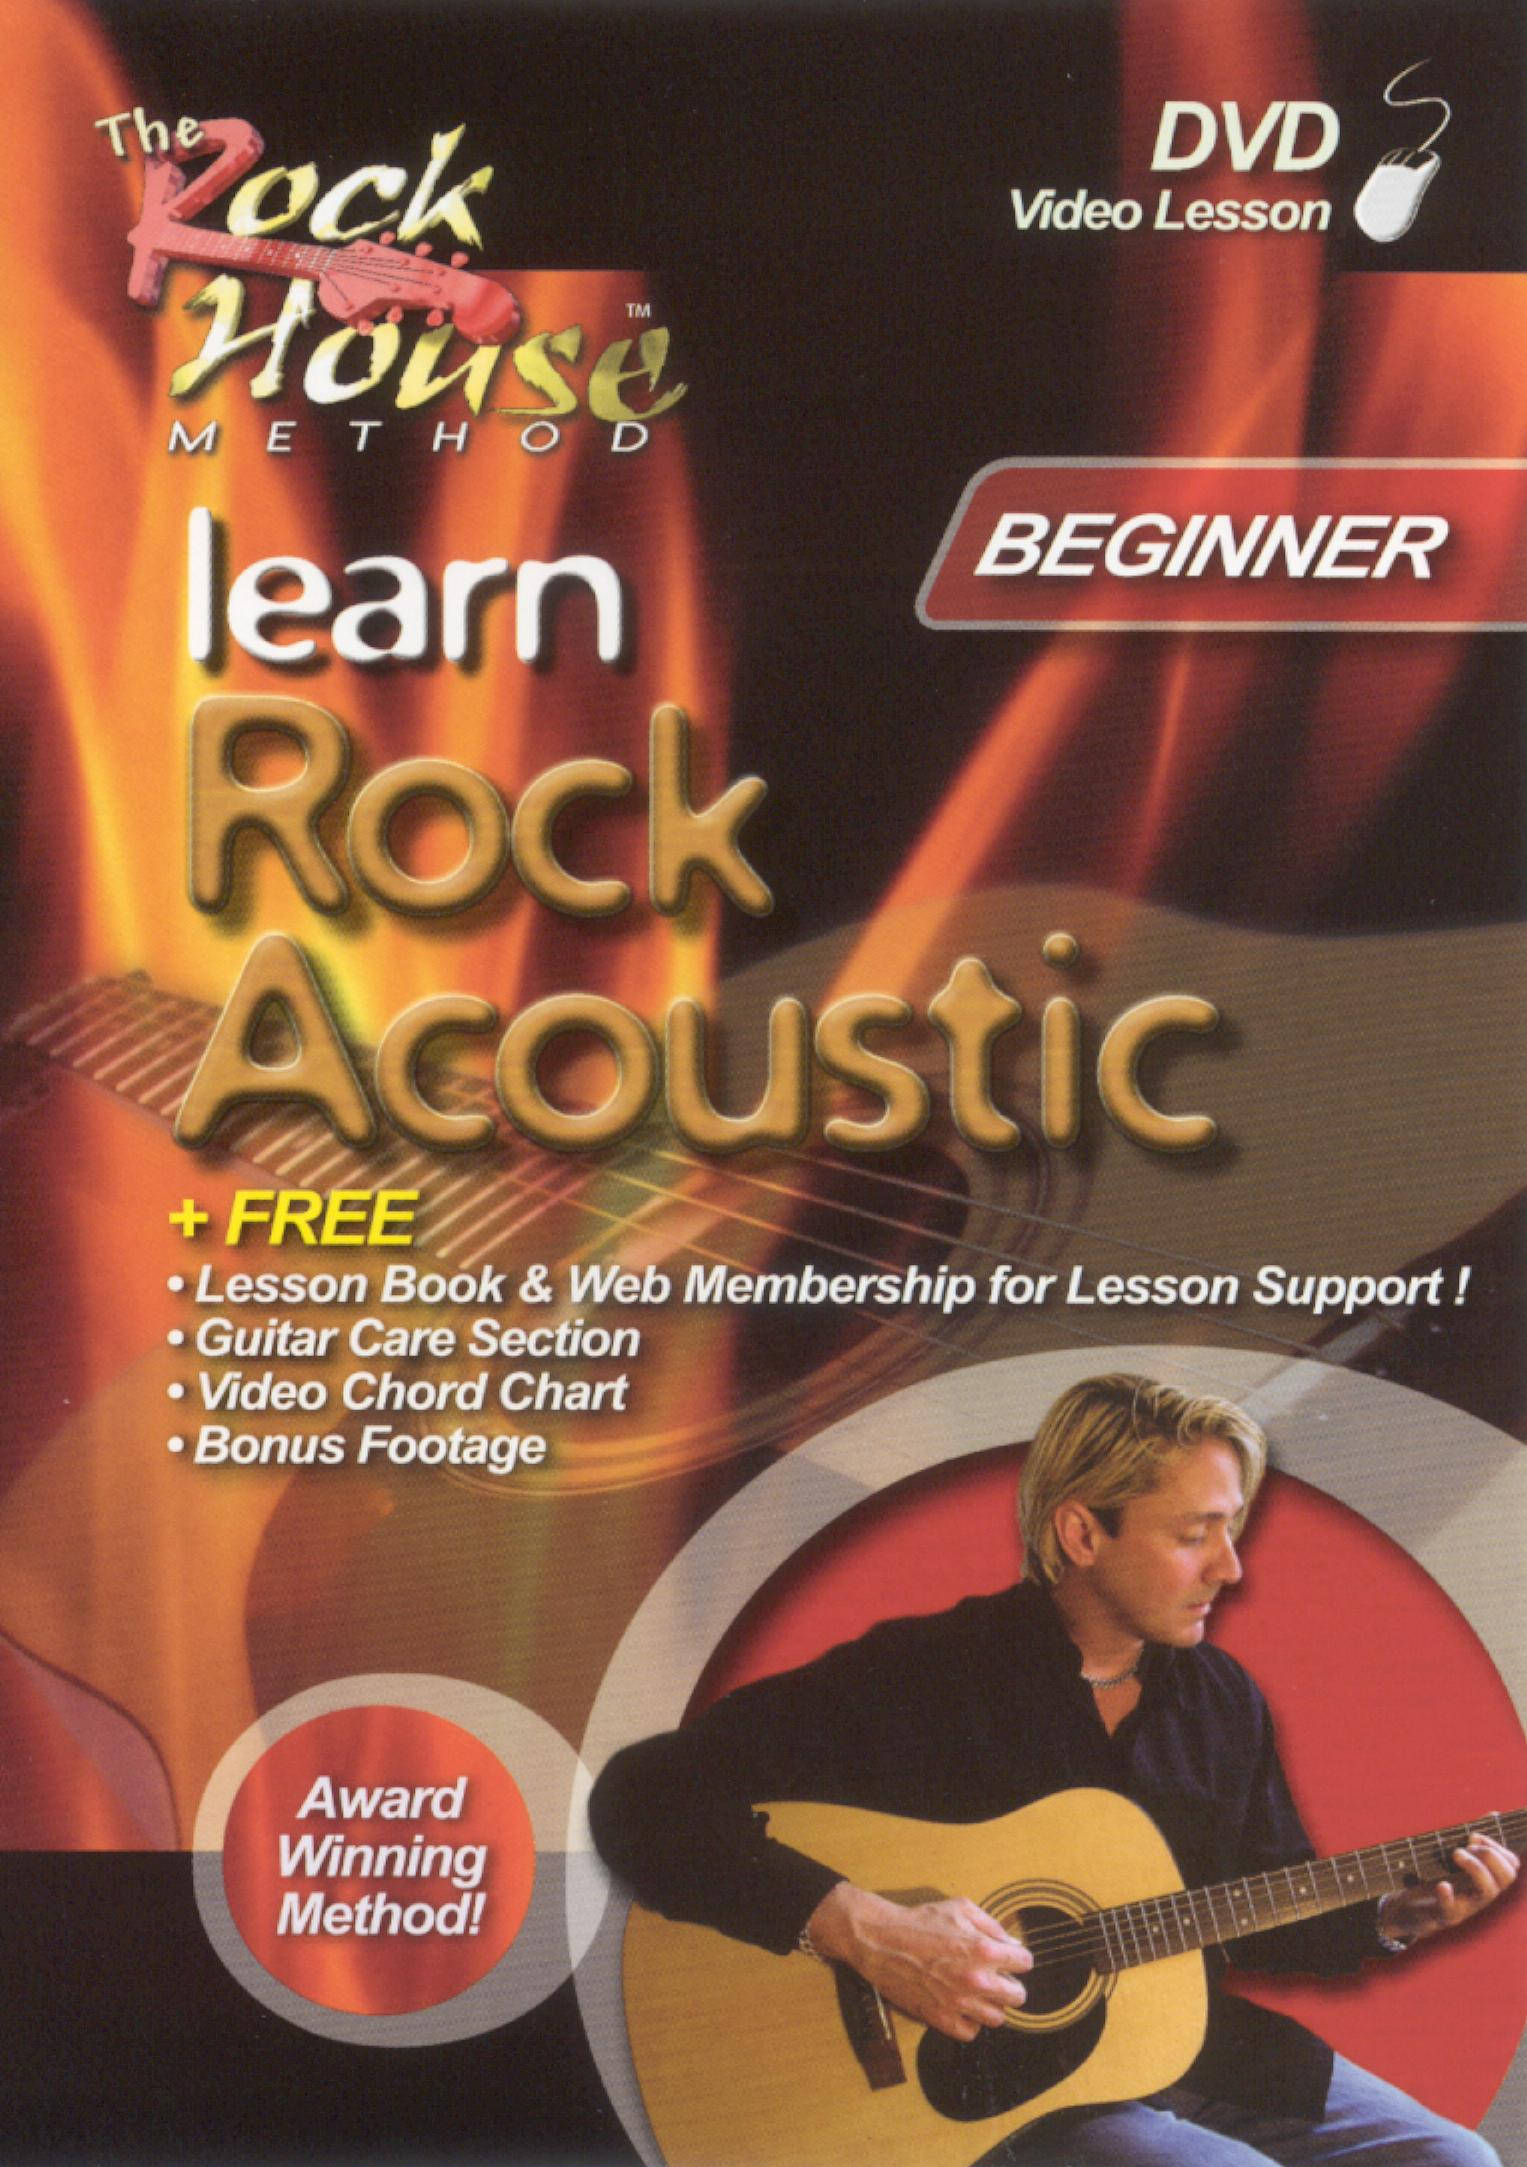 The Rock House Method: Learn Rock Acoustic - Level 1